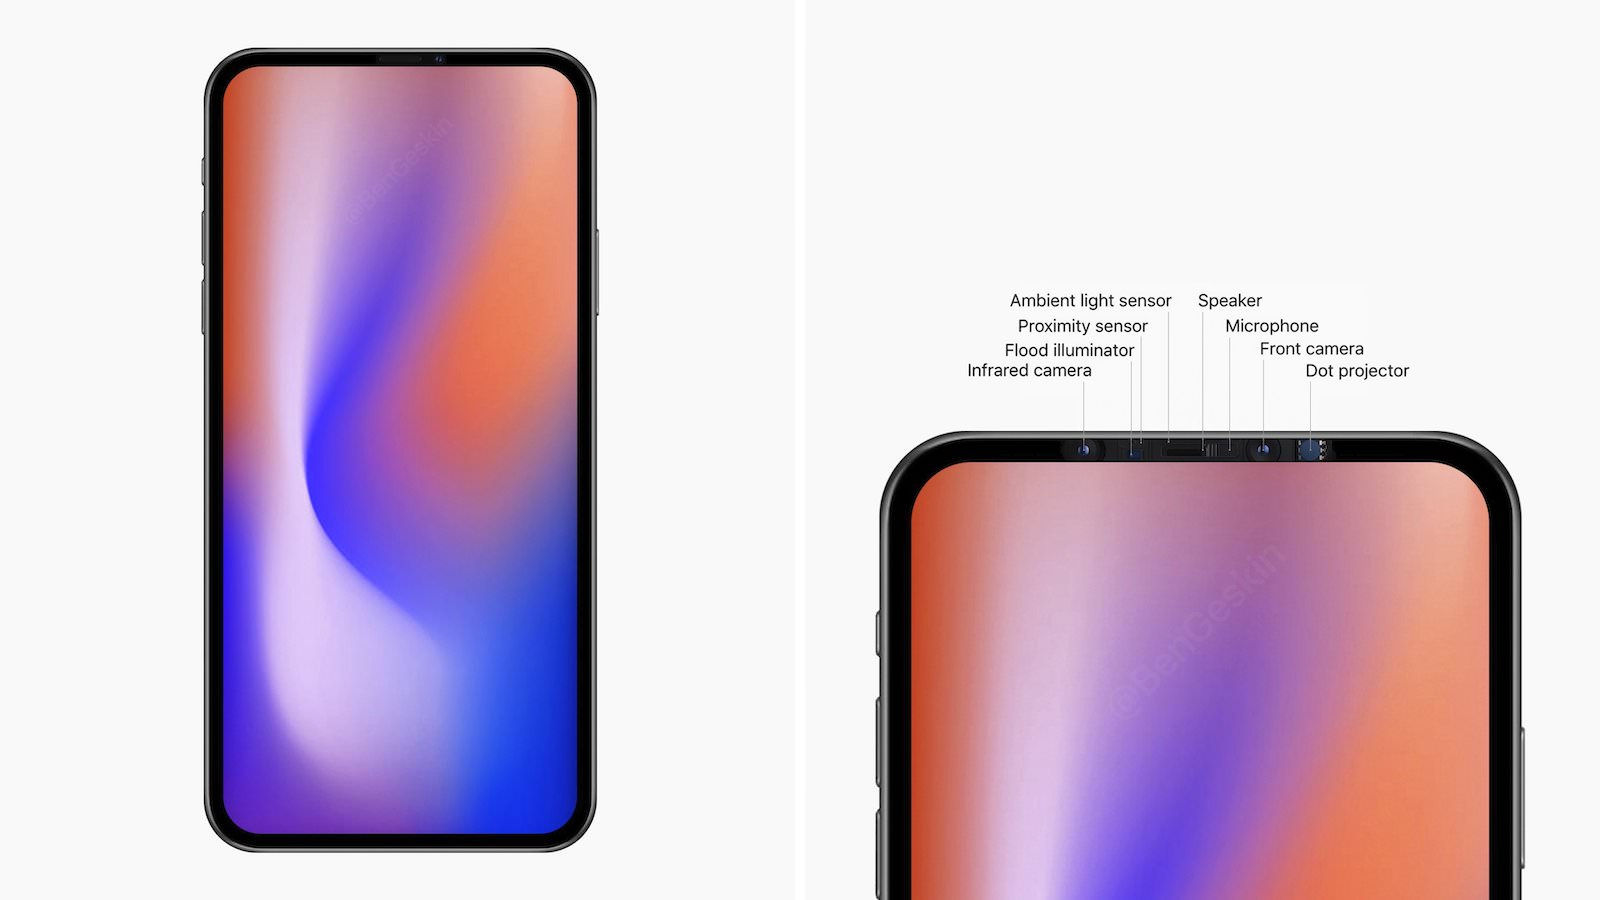 6 7 inch display on next iphone 2020